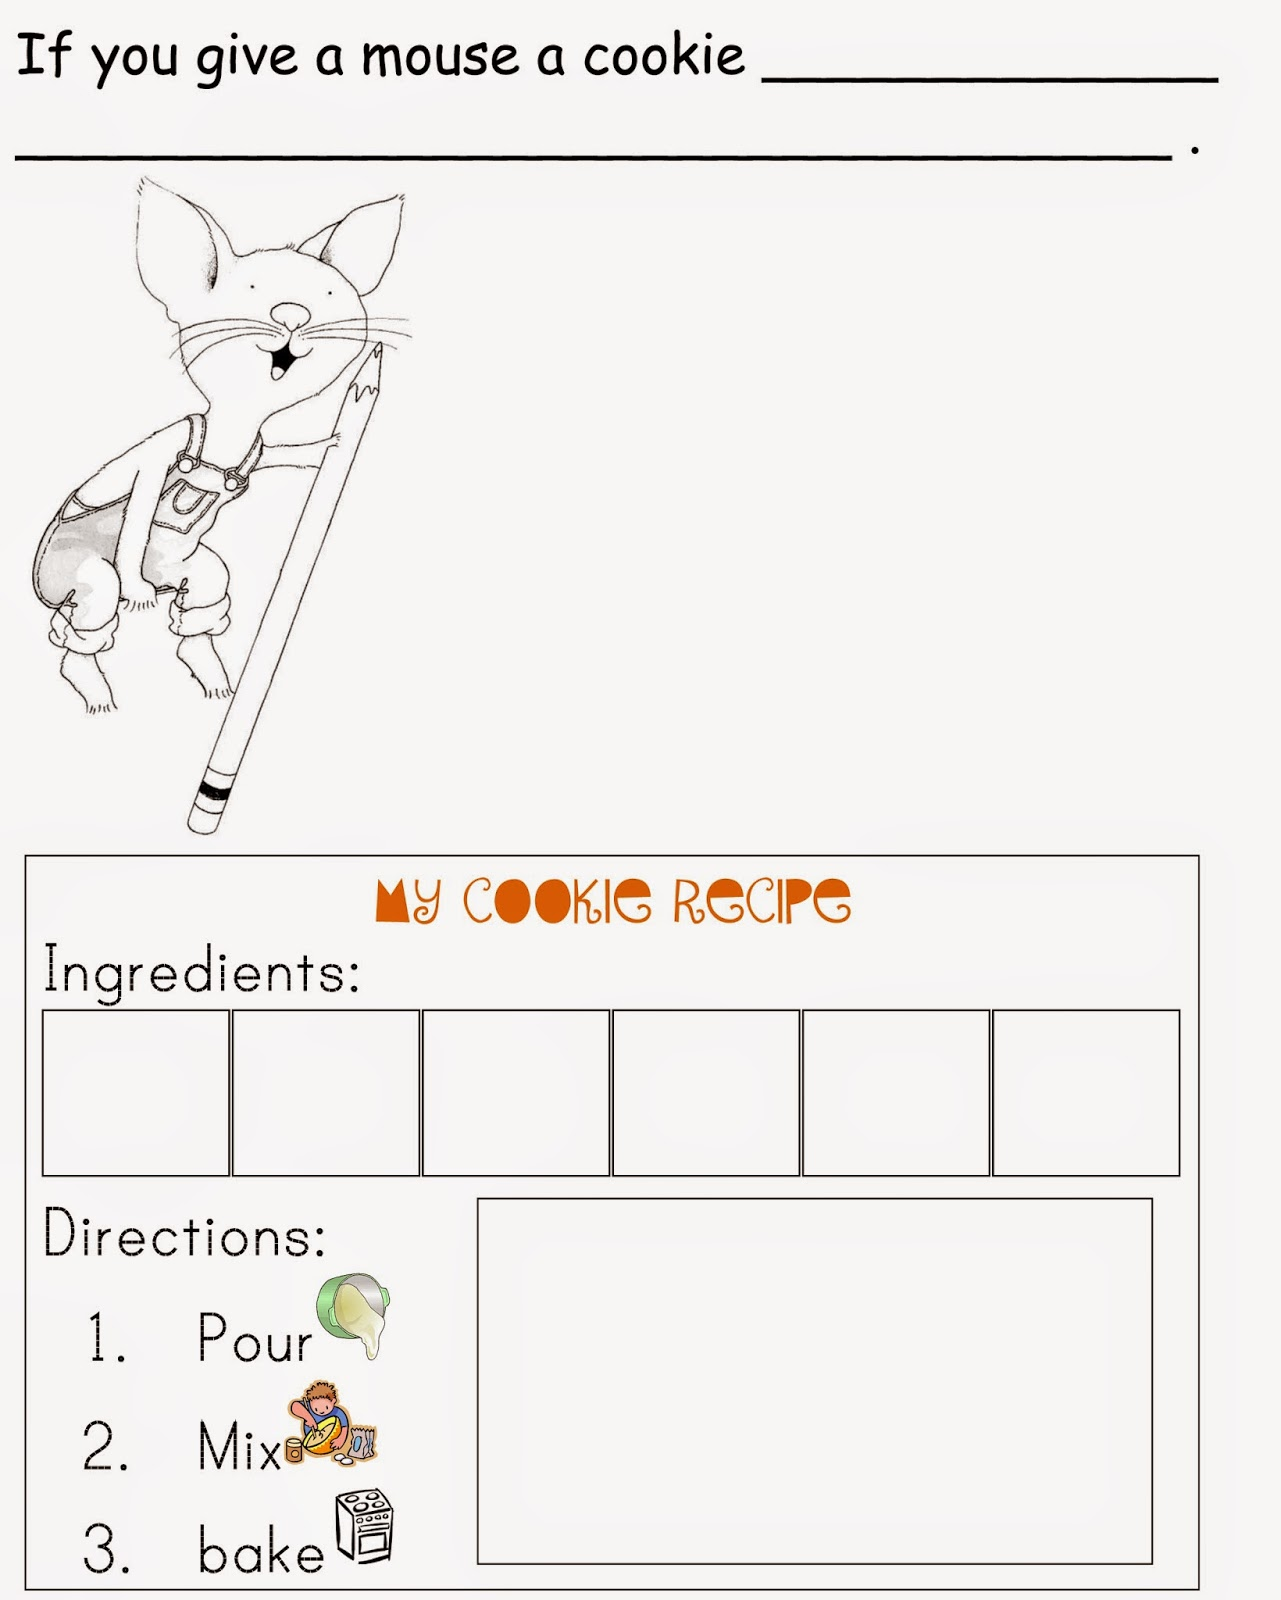 Worksheets If You Give A Mouse A Cookie Worksheets inspiration organization if you give a mouse cookie worksheets worksheets